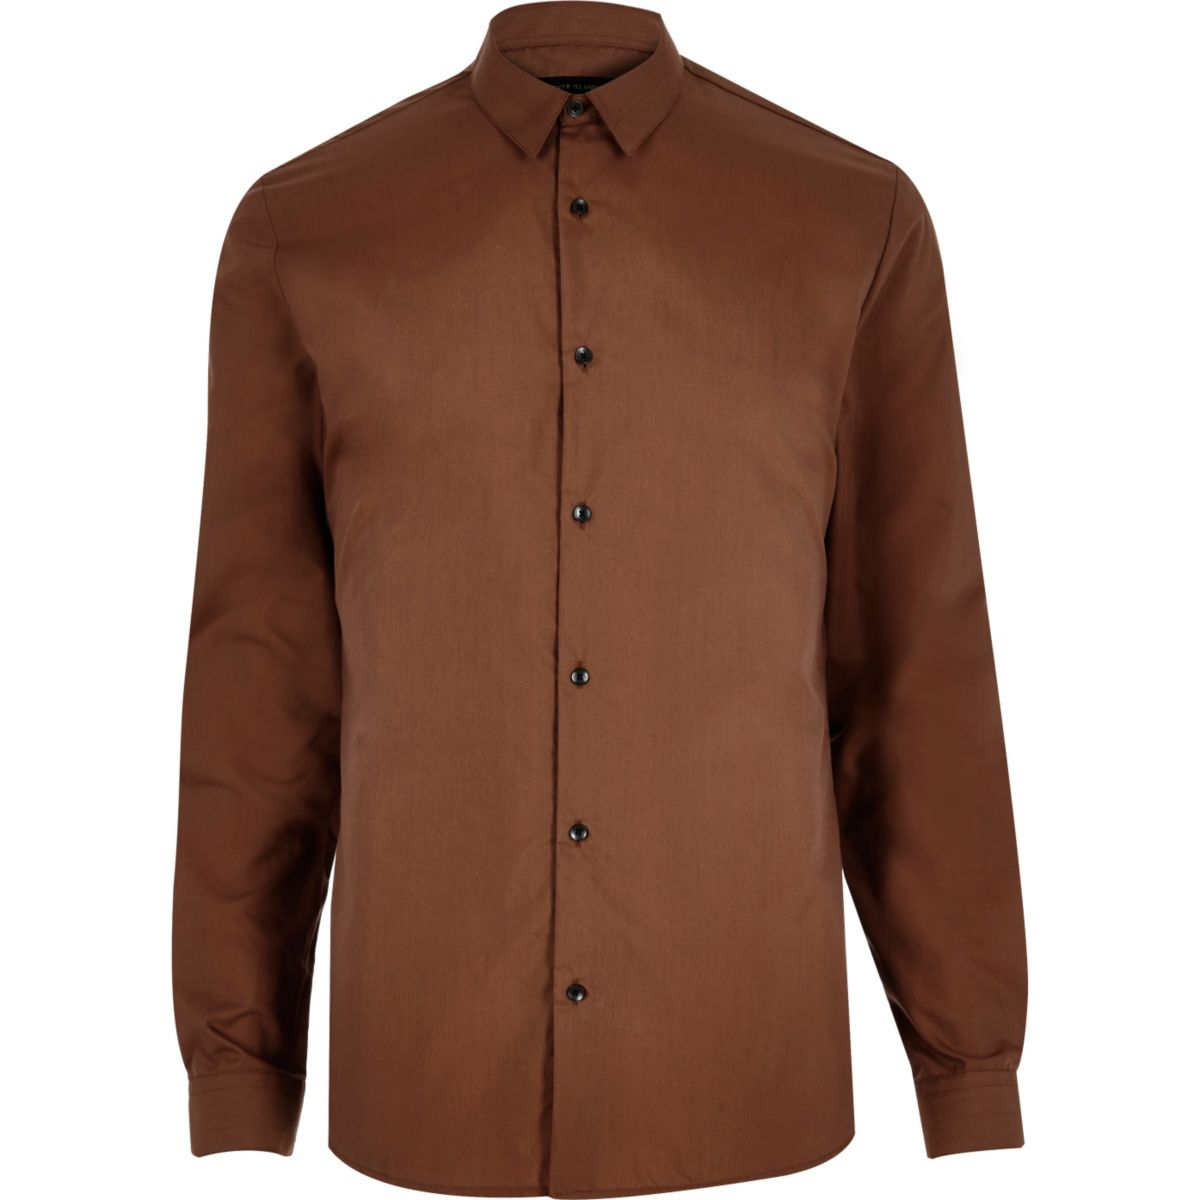 Rust brown stretch slim shirt